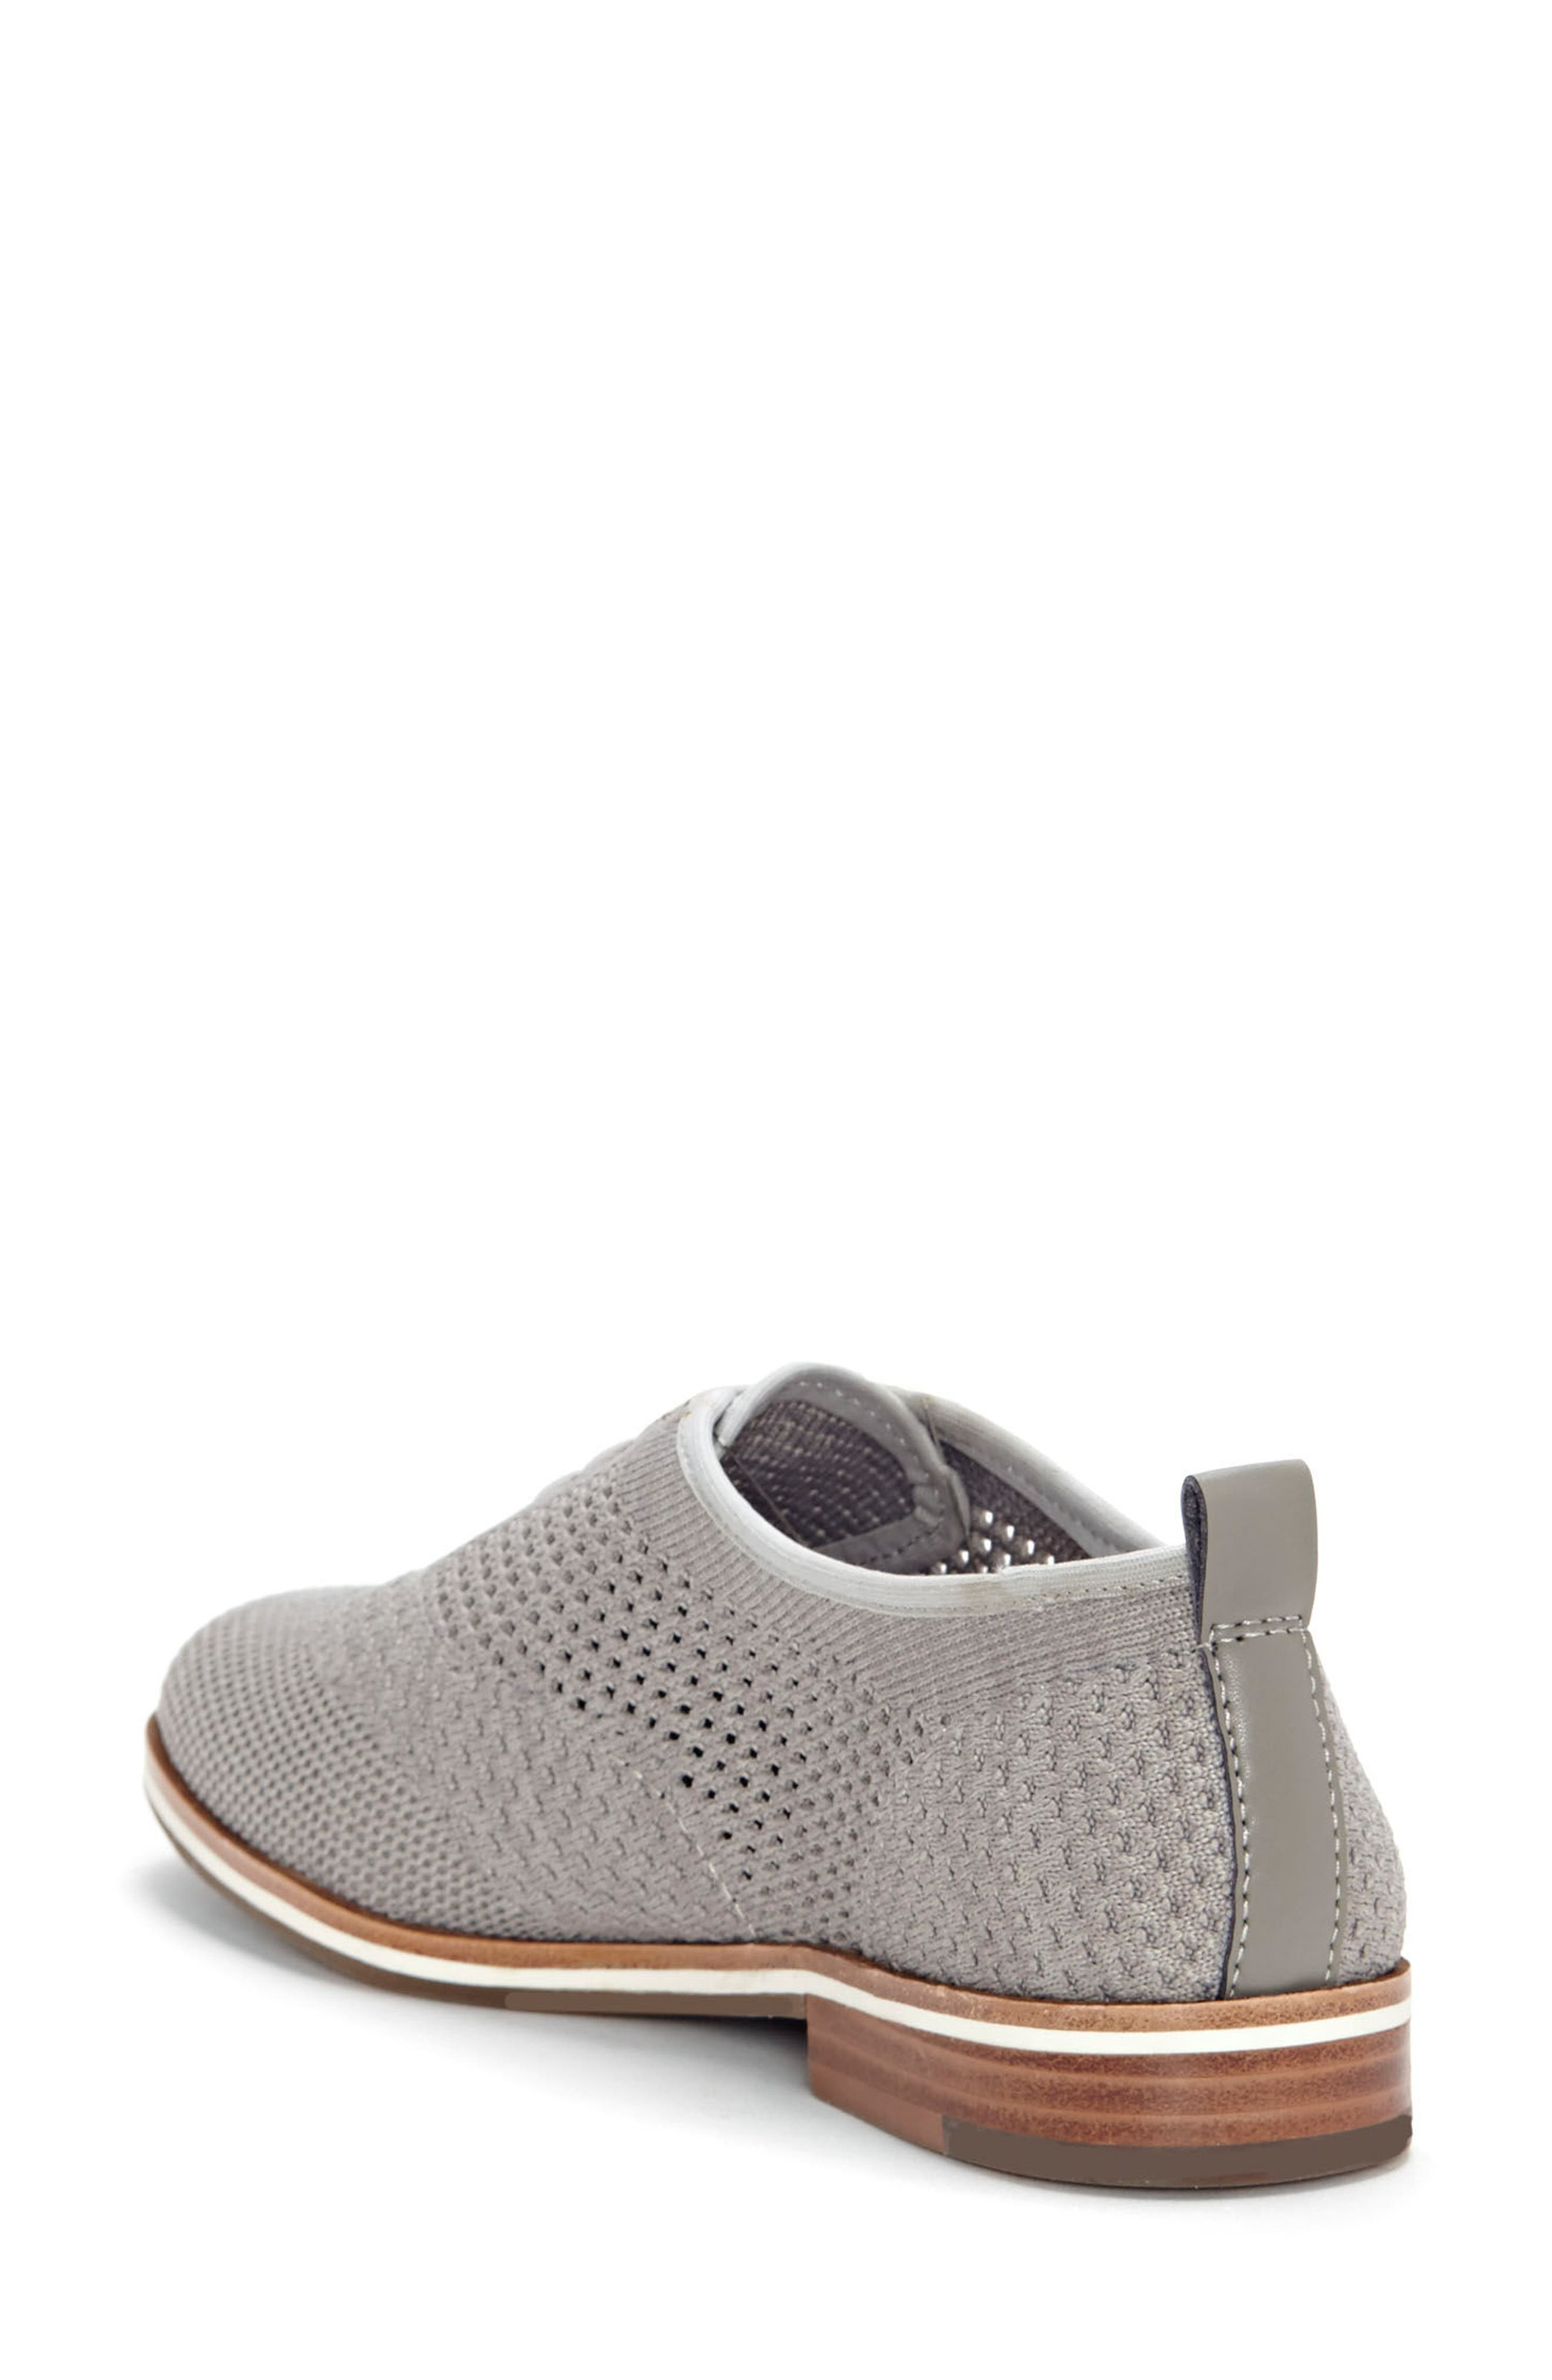 Lucerne Knit Oxford,                             Alternate thumbnail 2, color,                             HEATHER GREY TEXTILE FABRIC